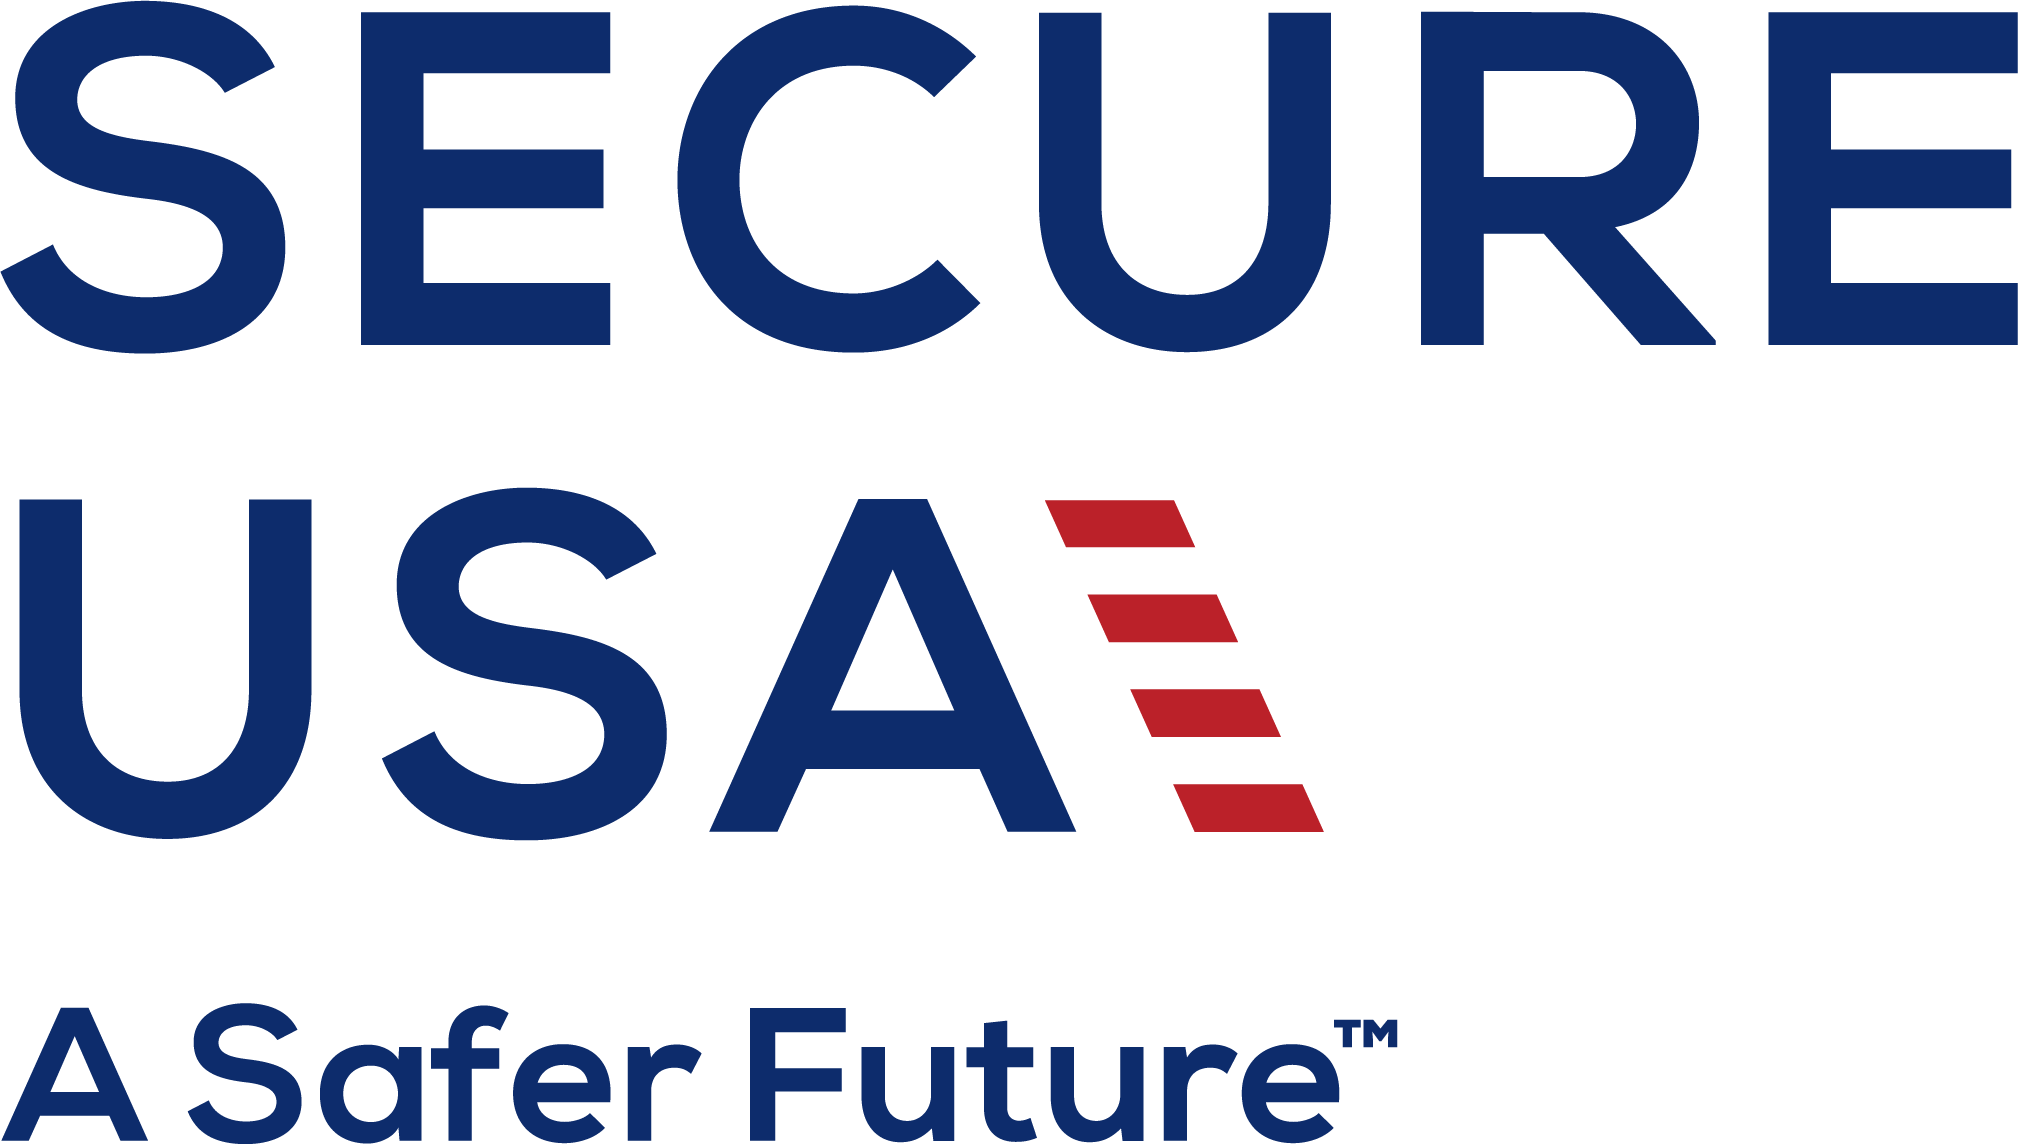 2017 Secure USA new logo